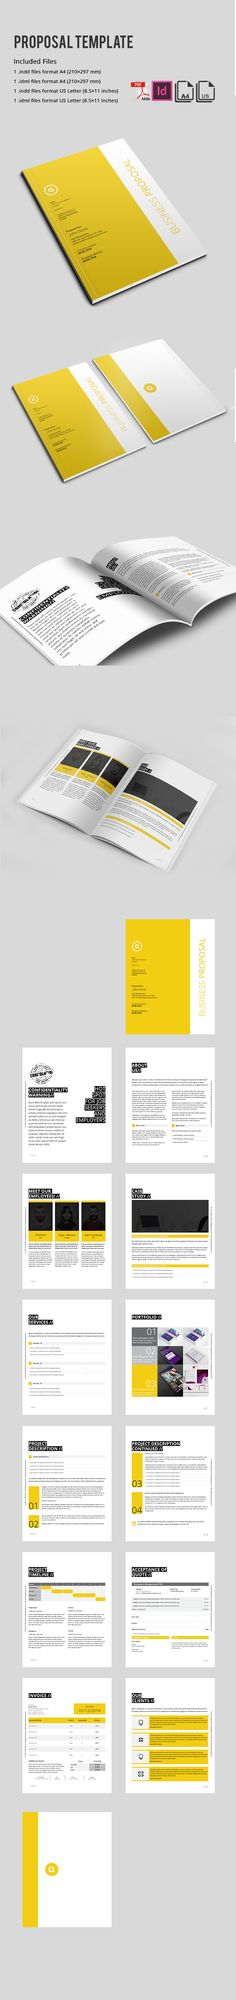 Sugercube Indesign Proposal Template For Business  Proposal